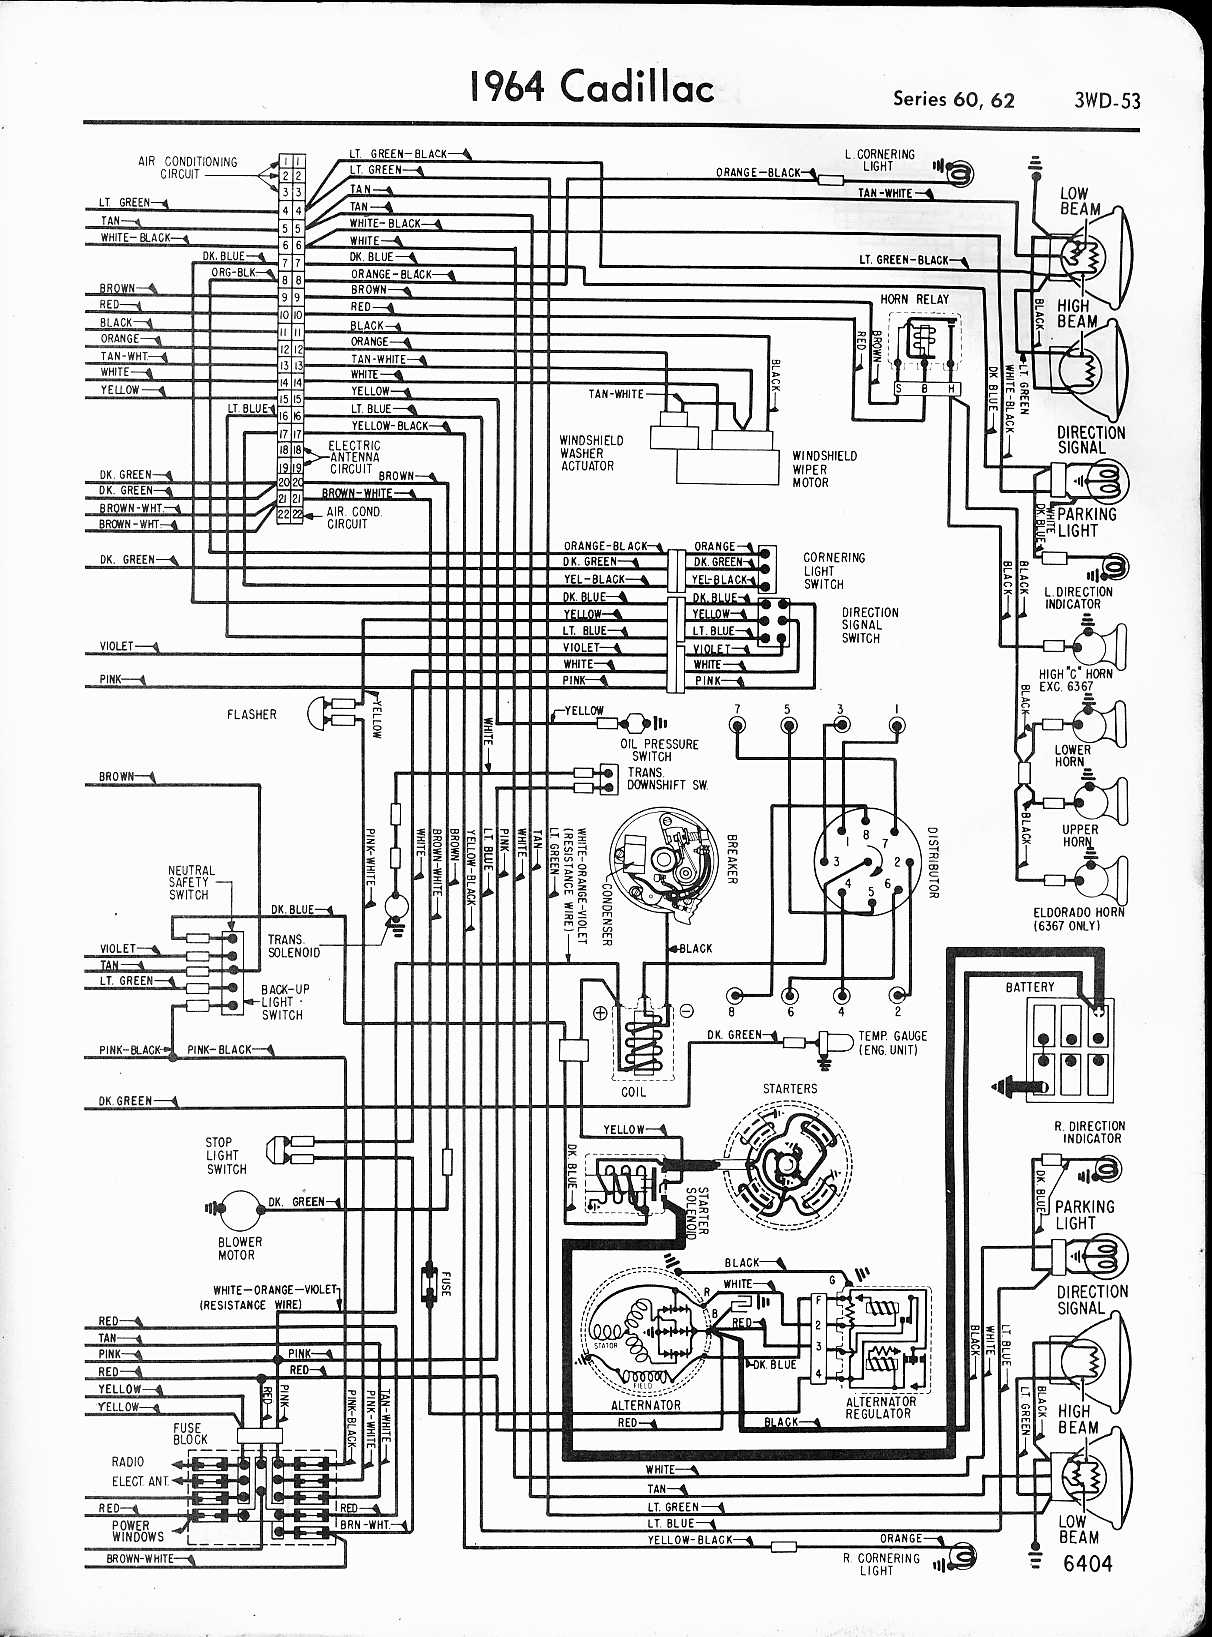 1962 cadillac wiring diagram - wiring diagram 1968 bronco wiring diagram 1968 cadillac wiring diagram